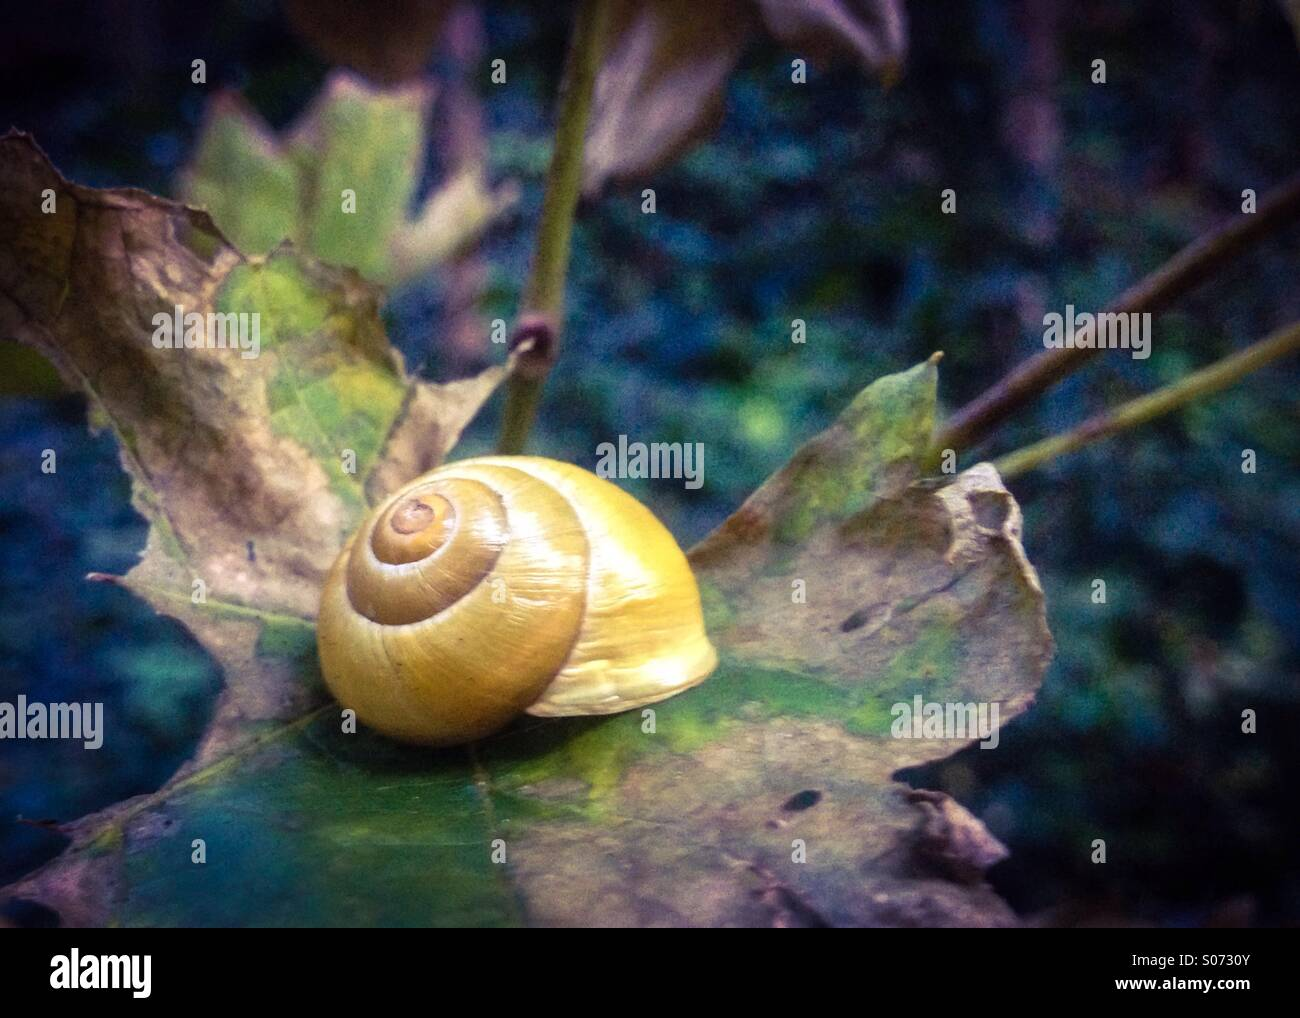 Yellow snail on a leaf. - Stock Image